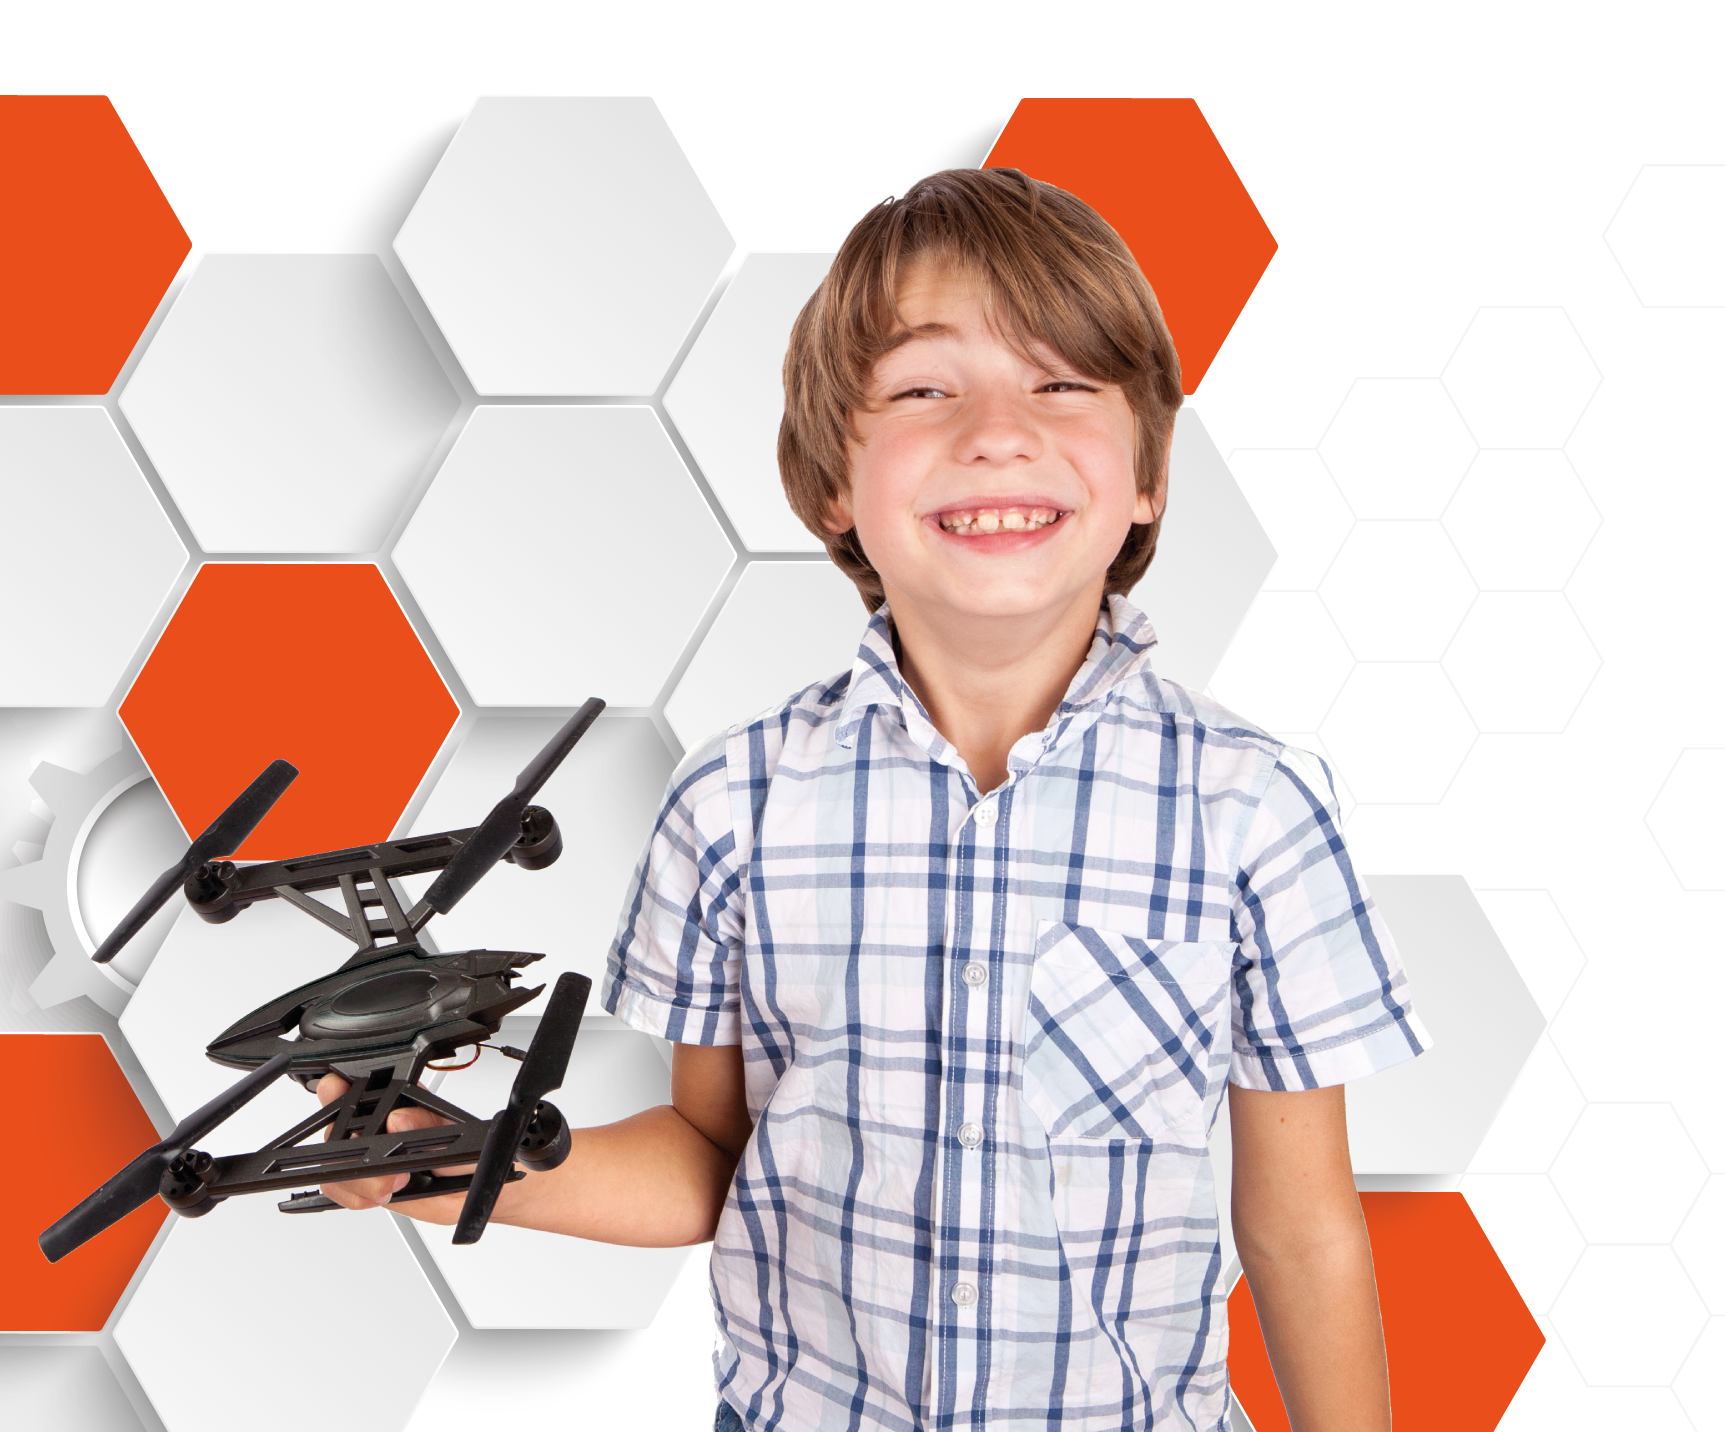 Curso Drones - Robotic Minds